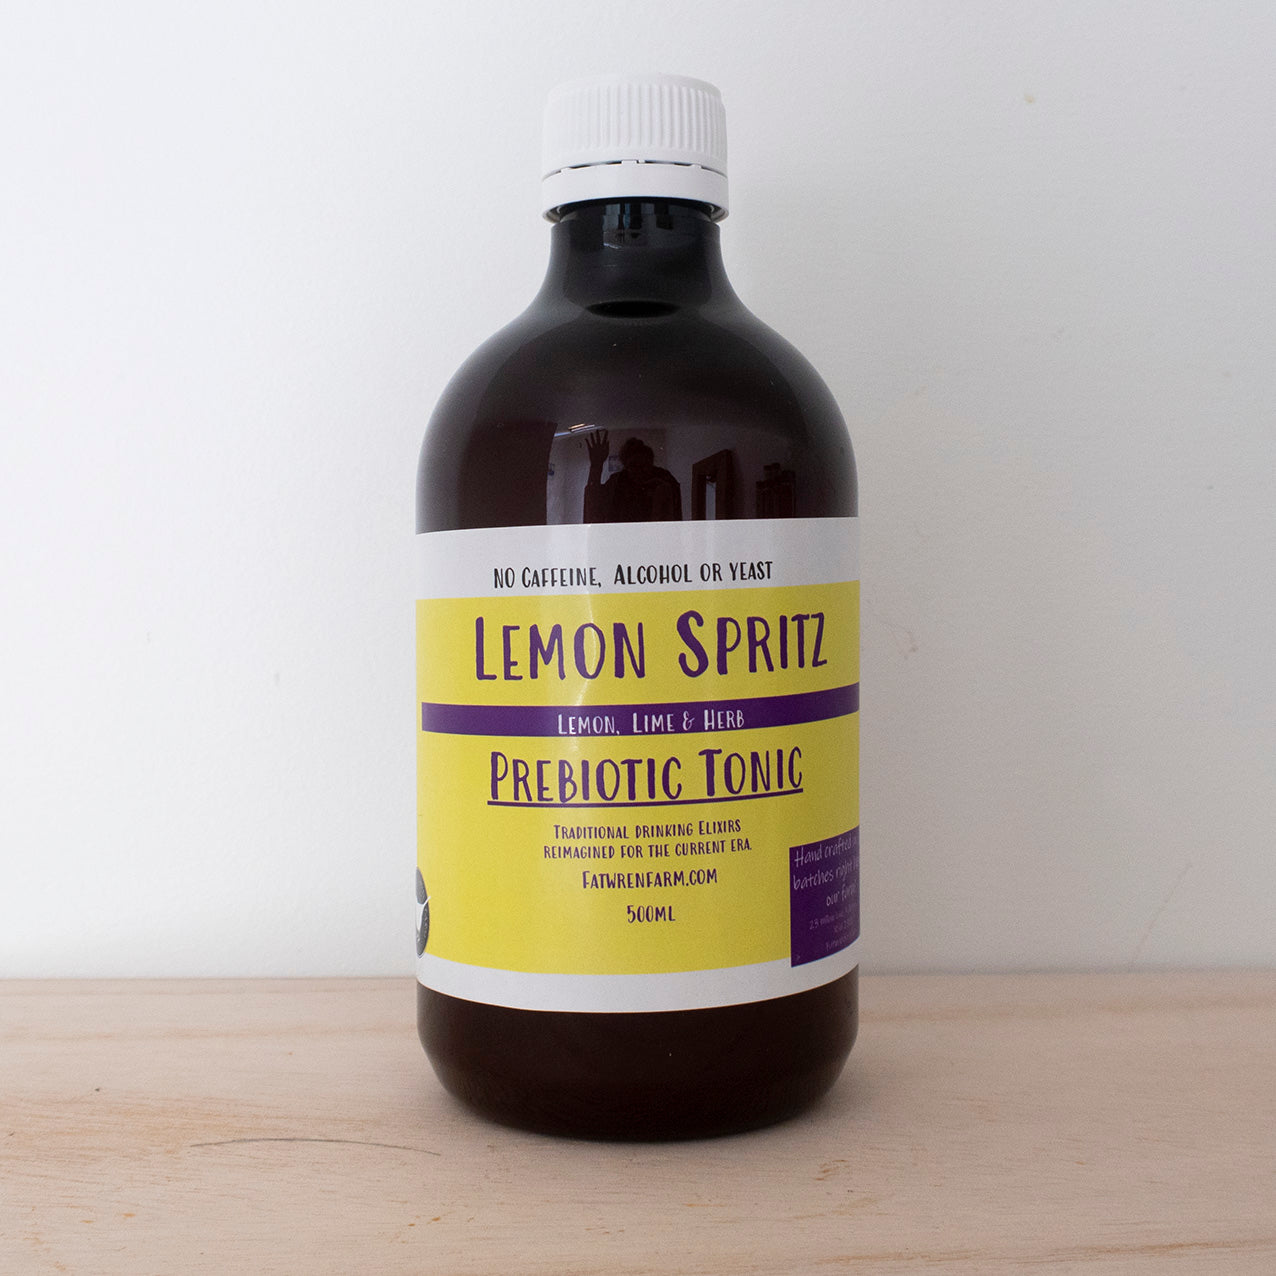 The Lemon Spritz Prebiotic Tonic